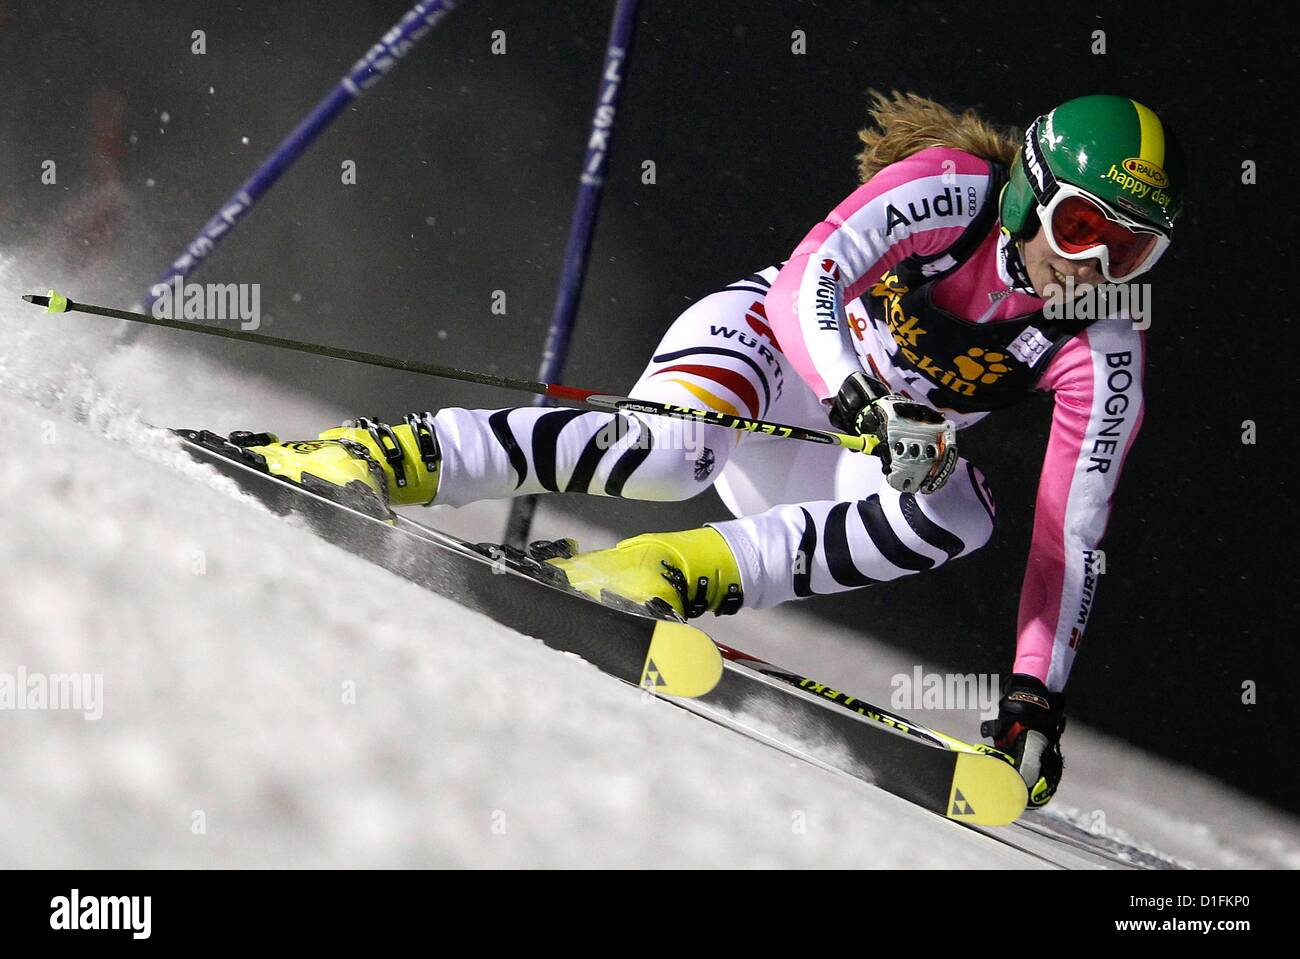 19.12.2012. Aare, Sweden.  FIS World Cup Giant slalom for women Picture shows Lena Duerr ger  World Cup 2013 - Stock Image